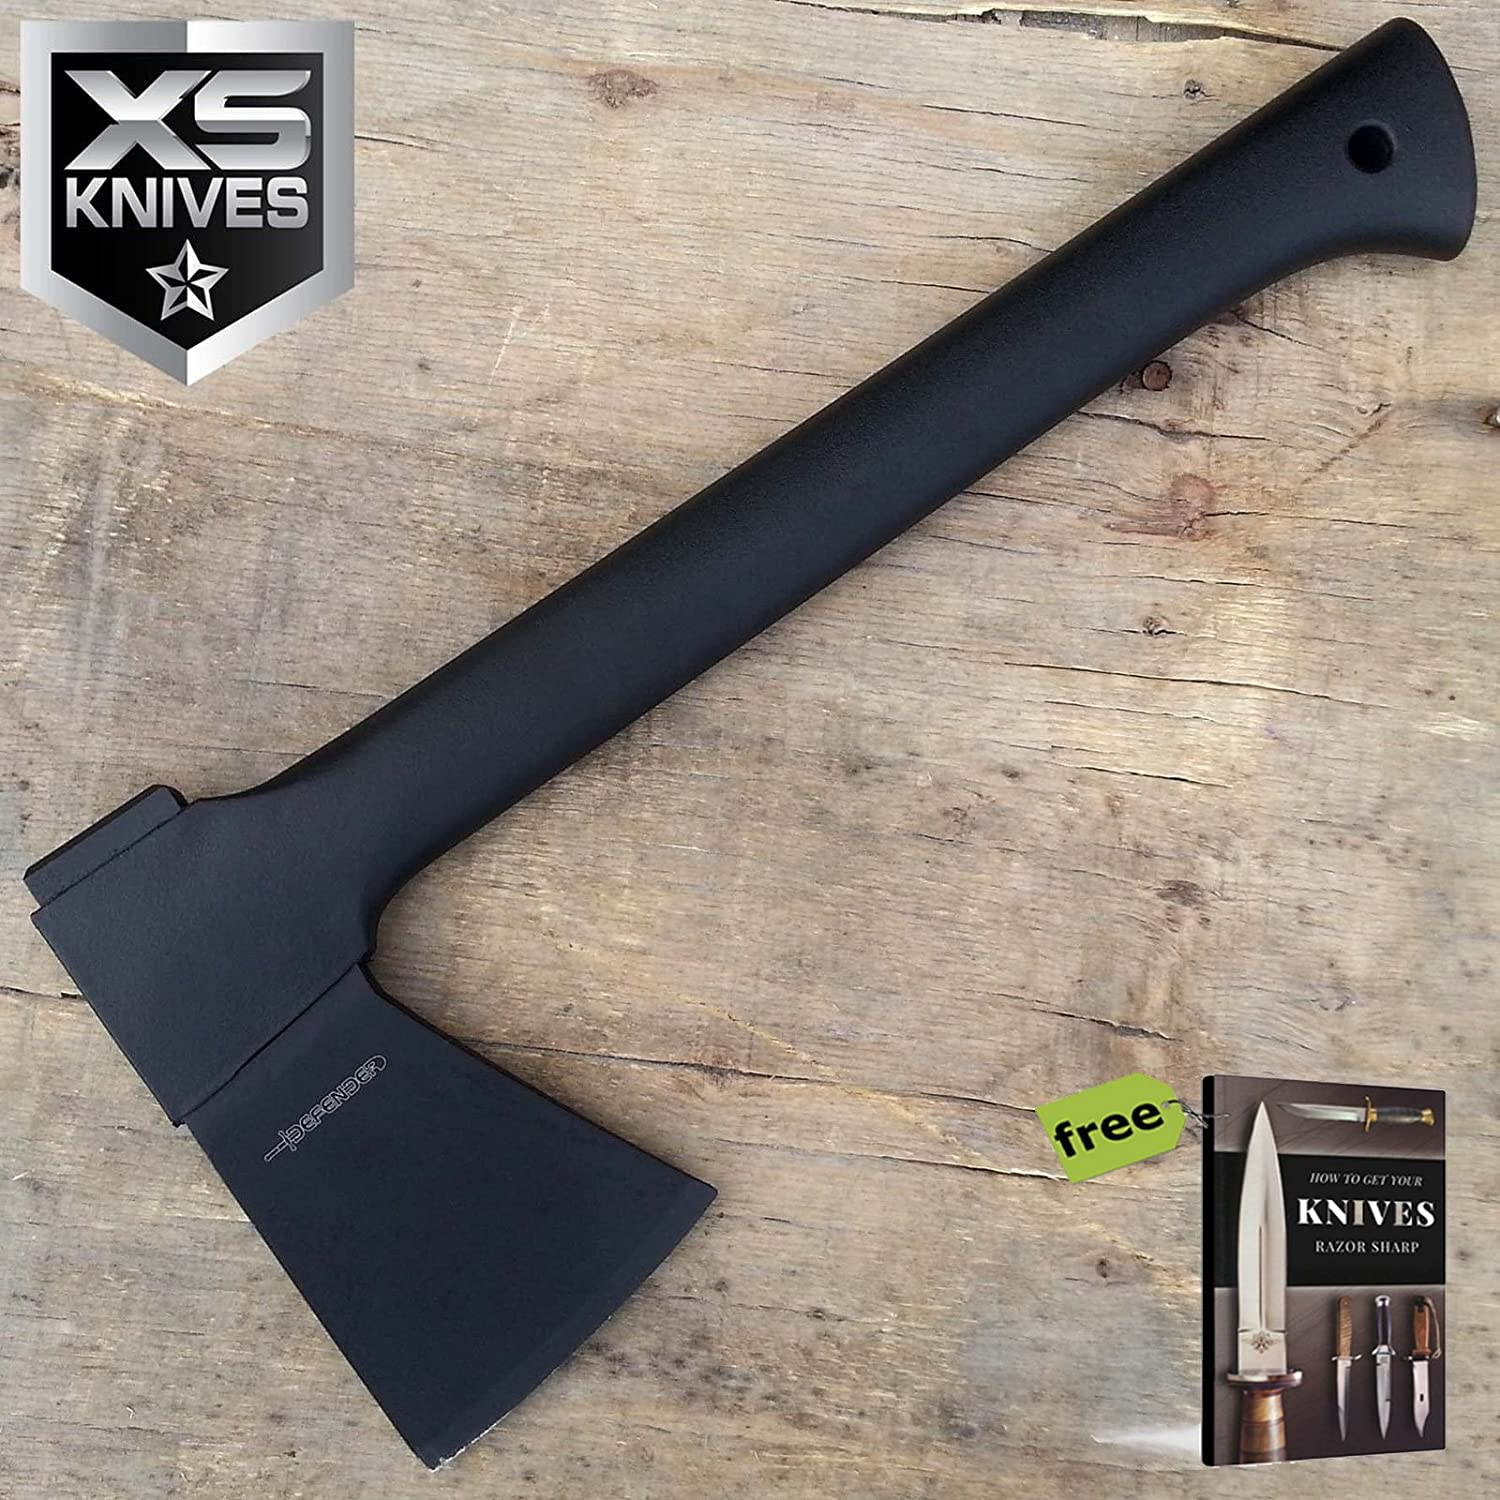 "14"" Heavy Duty Full Tang Tactical Hunting Fighting Axe Carbon Steel Sharp Blade Knife w/Nylon Sheath + Free eBook by SURVIVAL STEEL 81ejyDAVoGLSL1500_"